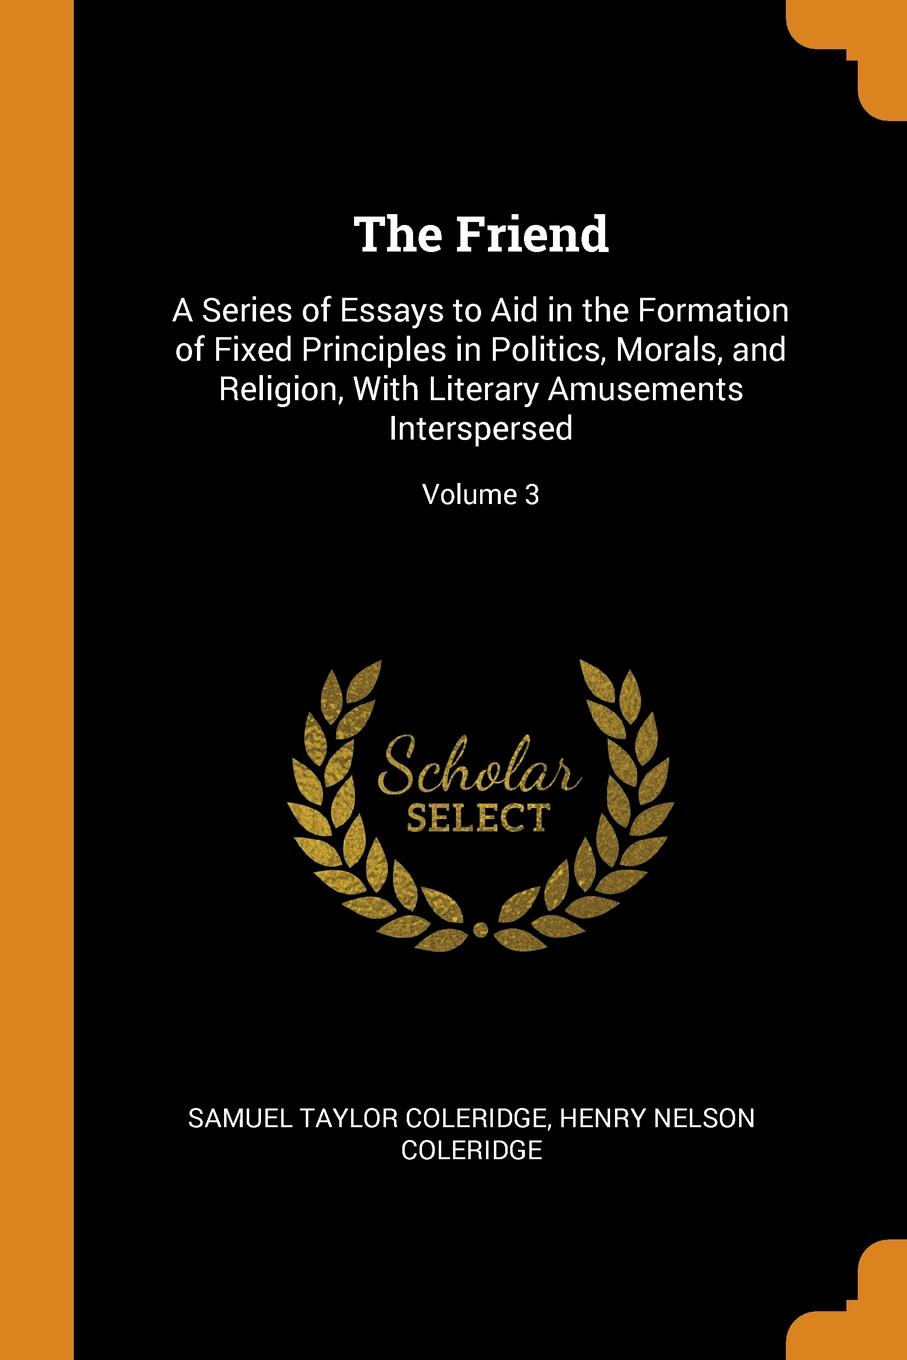 The Friend. A Series of Essays to Aid in the Formation of Fixed Principles in Politics, Morals, and Religion, With Literary Amusements Interspersed; Volume 3. Samuel Taylor Coleridge, Henry Nelson Coleridge